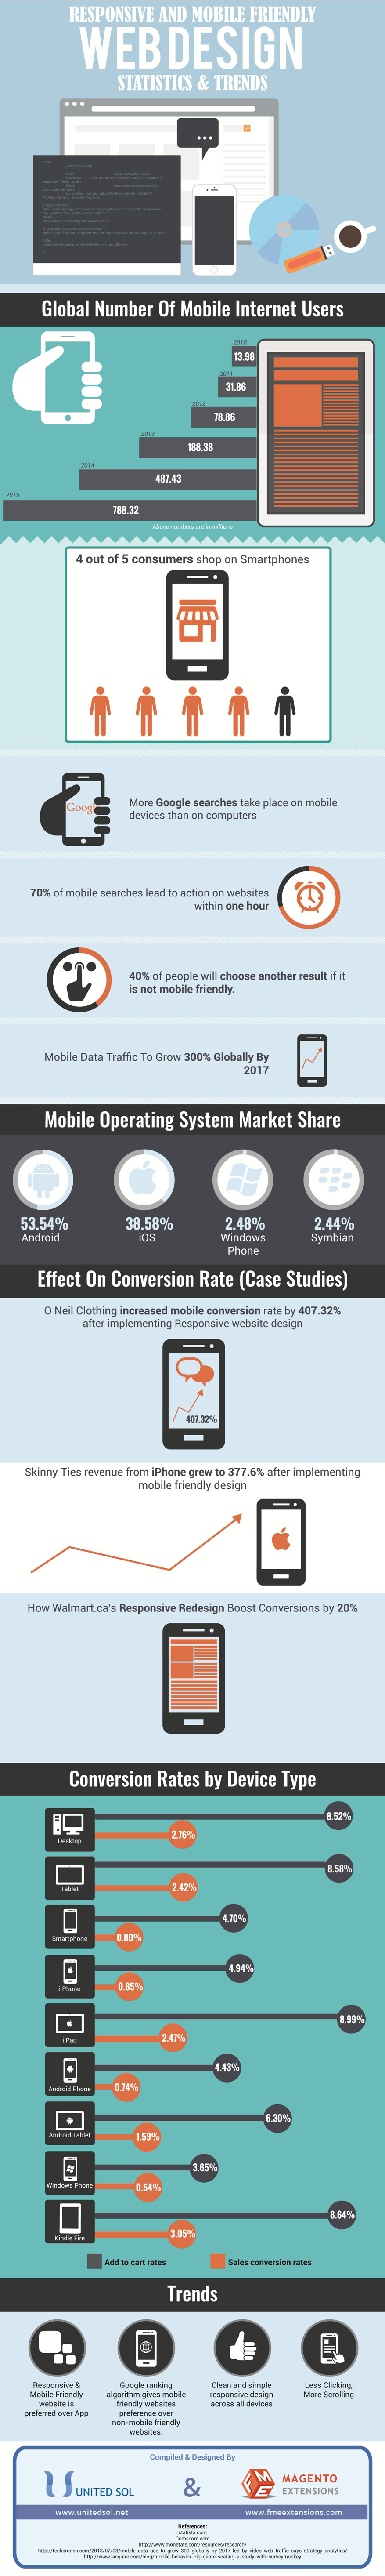 Responsive Web Design - Trends and Statistics